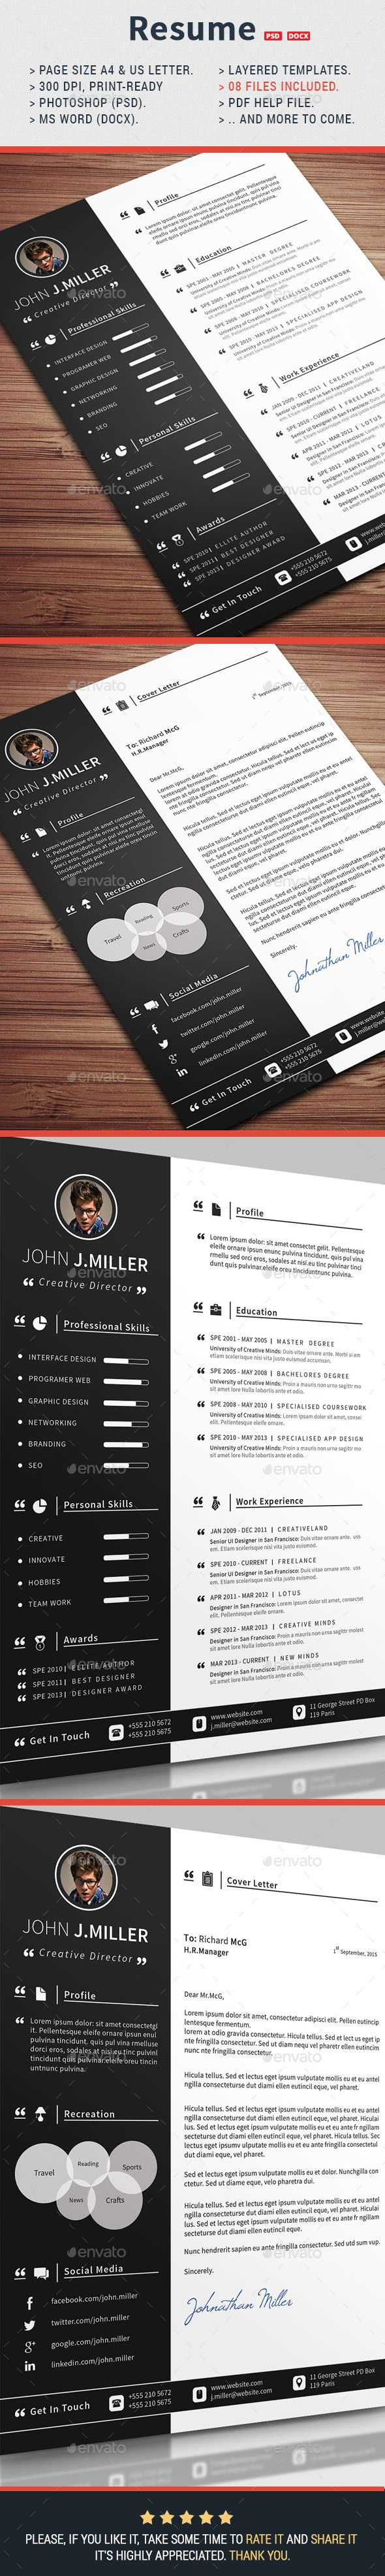 letter format for application%0A resume key words and phrases template Pinterest